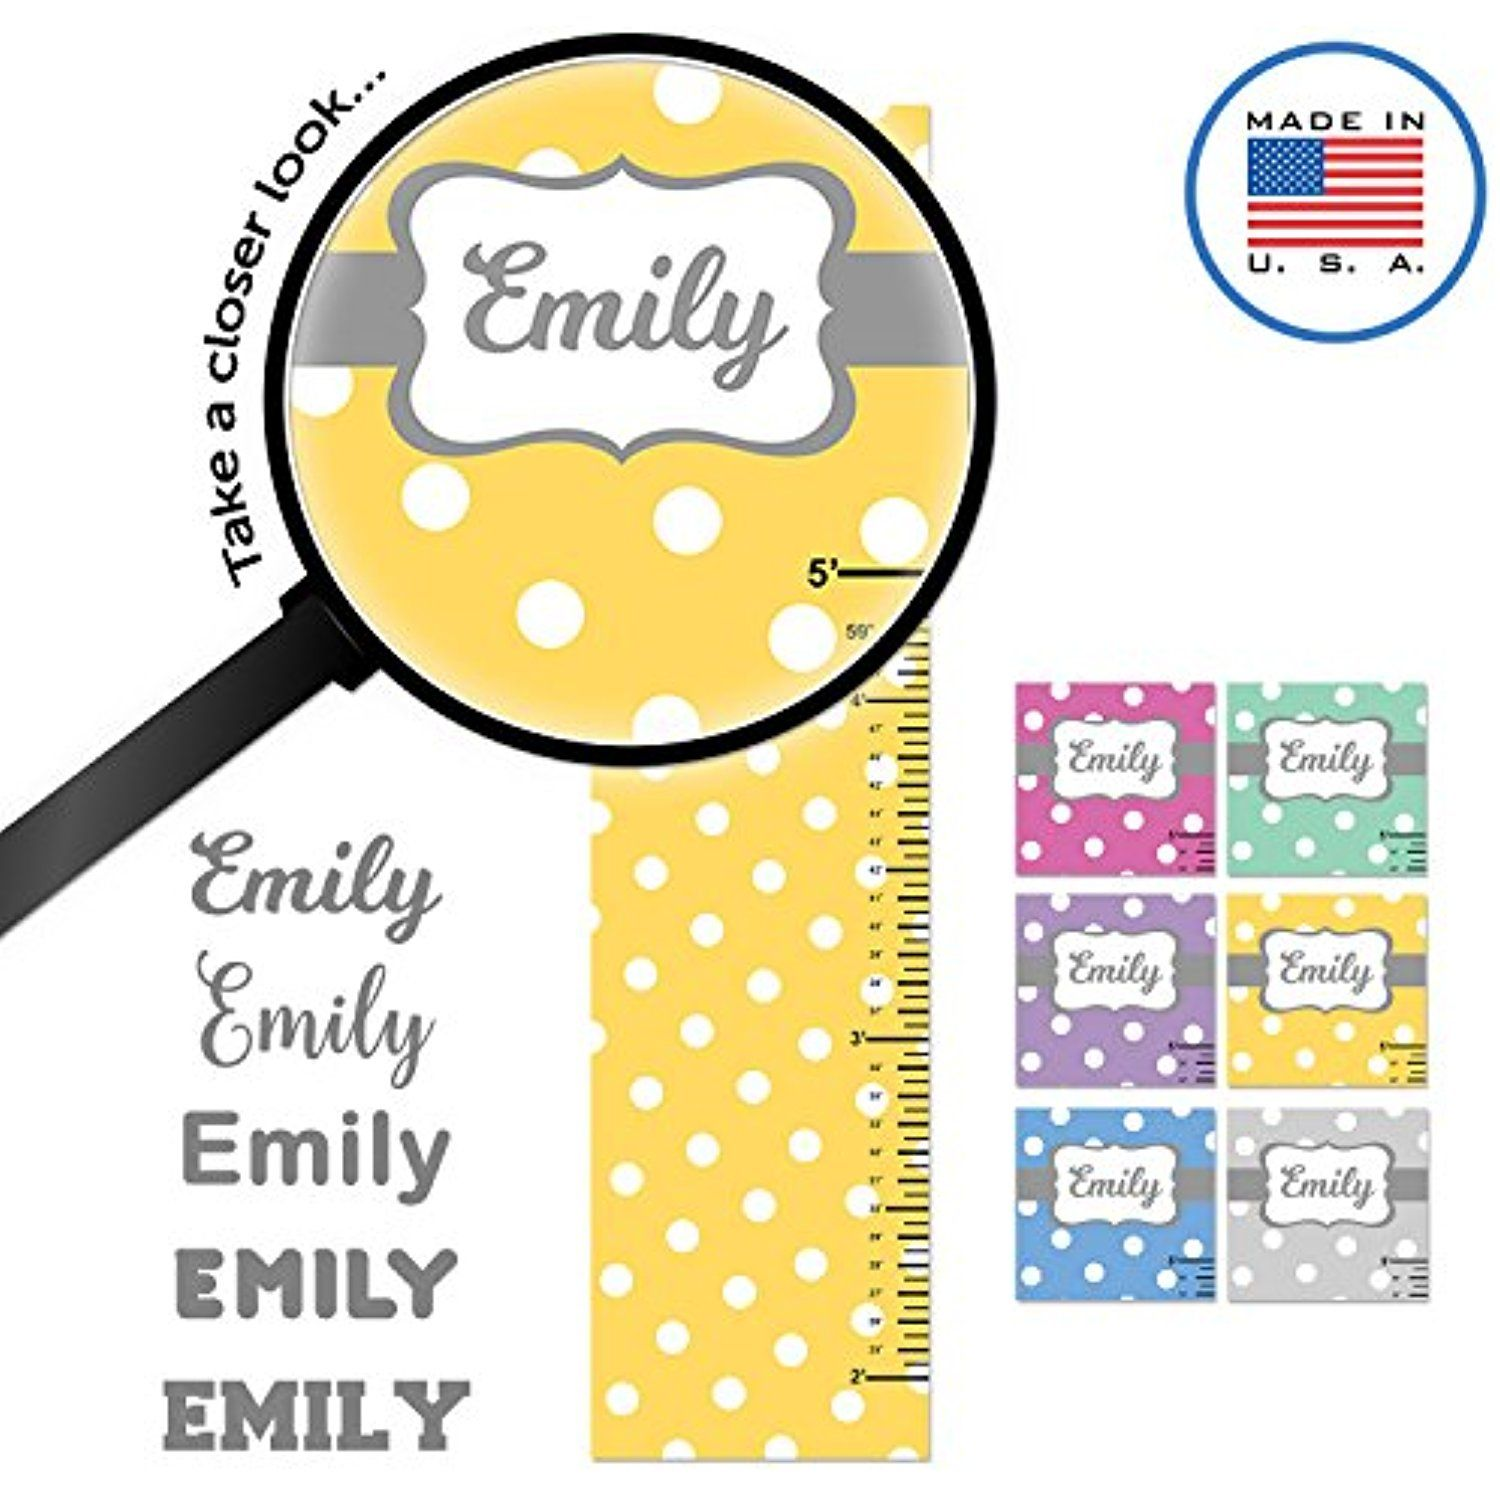 Wallclipz personalized growth chart fabric wall decal polka dots wallclipz personalized growth chart fabric wall decal polka dots yellow white name height ruler measurement peel and stick nursery baby girl boy geenschuldenfo Images